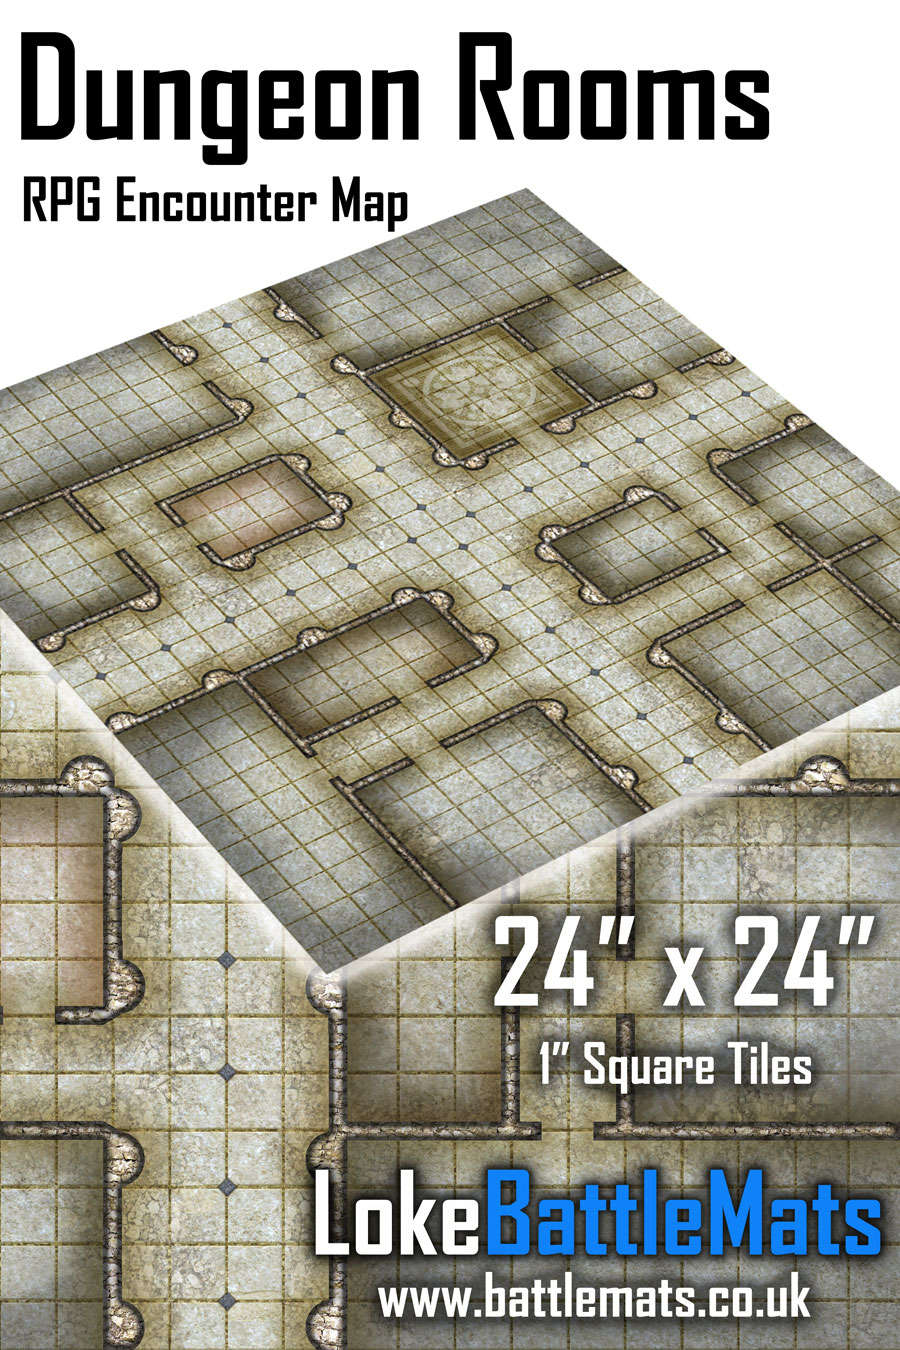 "Dungeon Rooms 24"" x 24"" RPG Encounter Map"